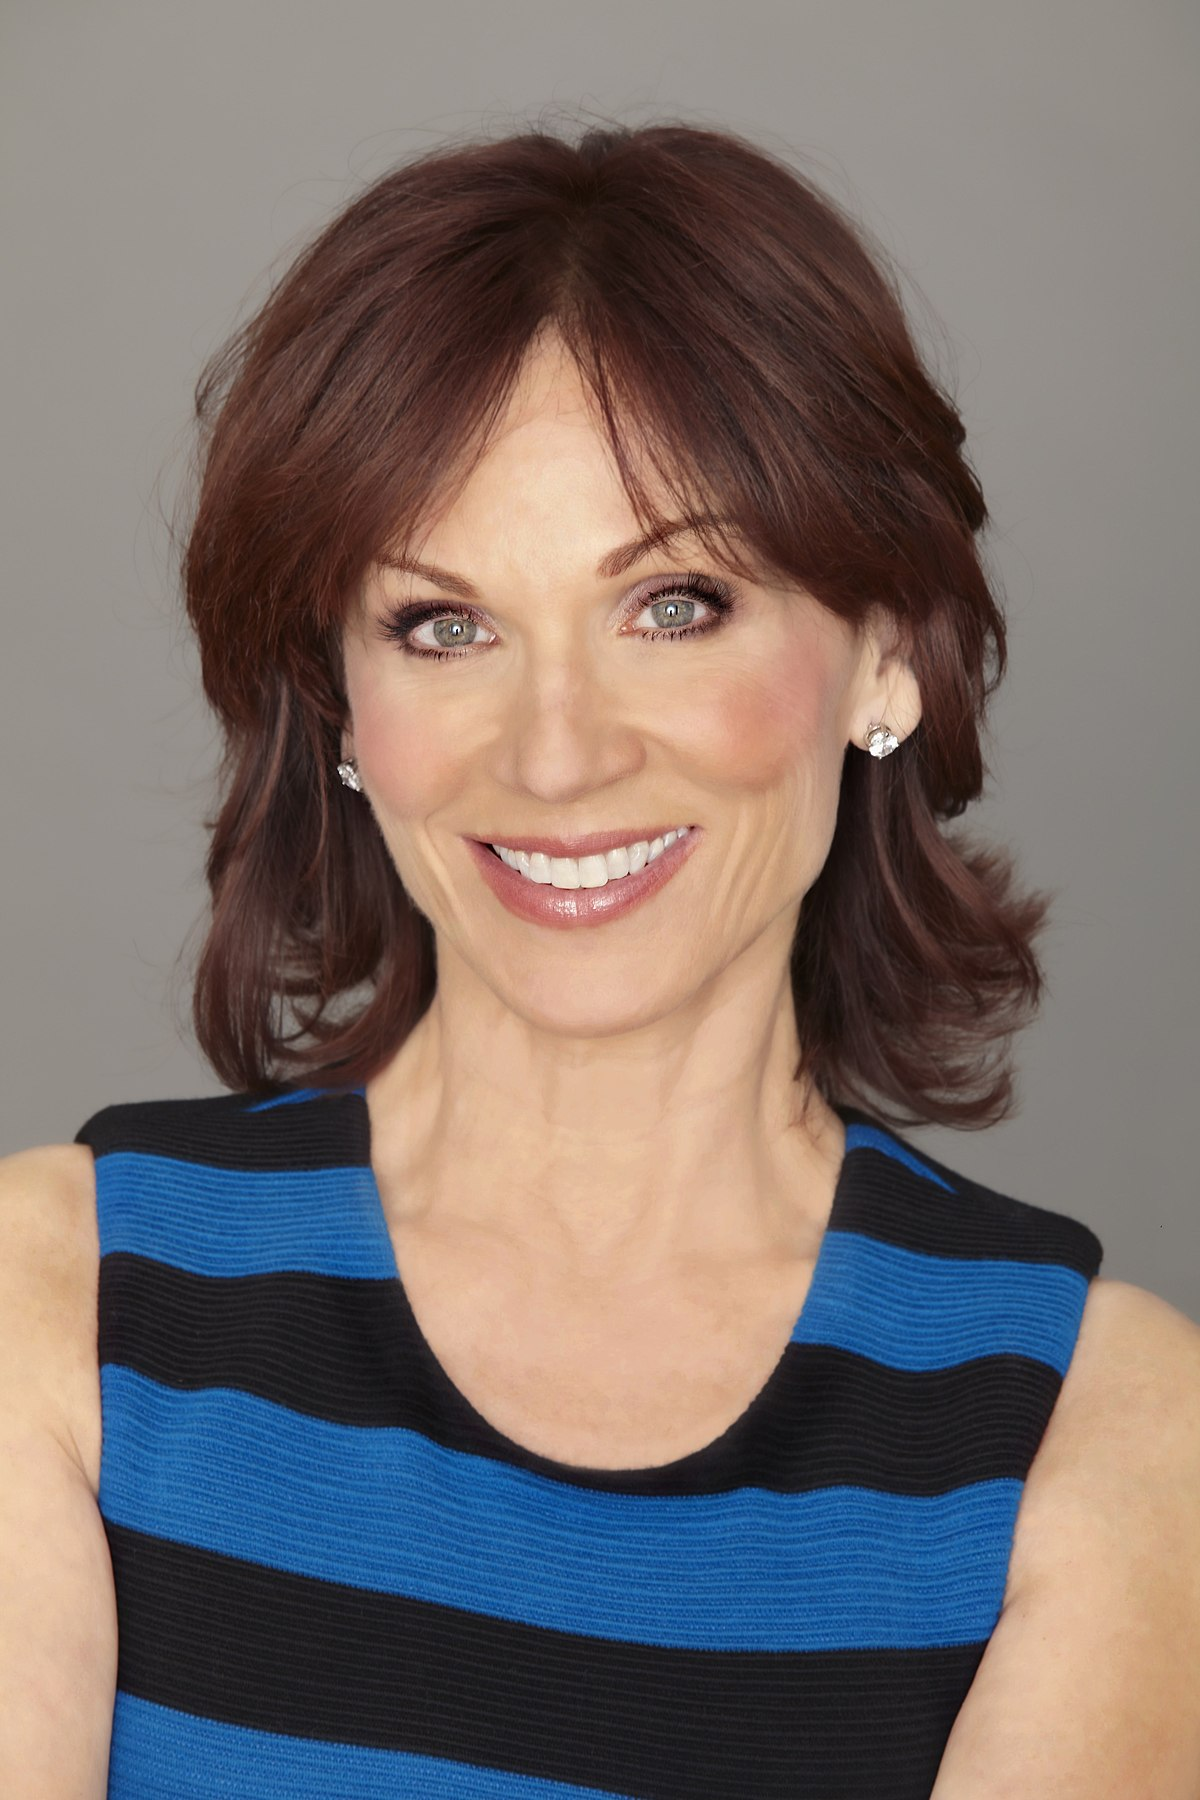 The 66-year old daughter of father Joseph Henner and mother Loretta Callis Marilu Henner in 2018 photo. Marilu Henner earned a  million dollar salary - leaving the net worth at 8 million in 2018